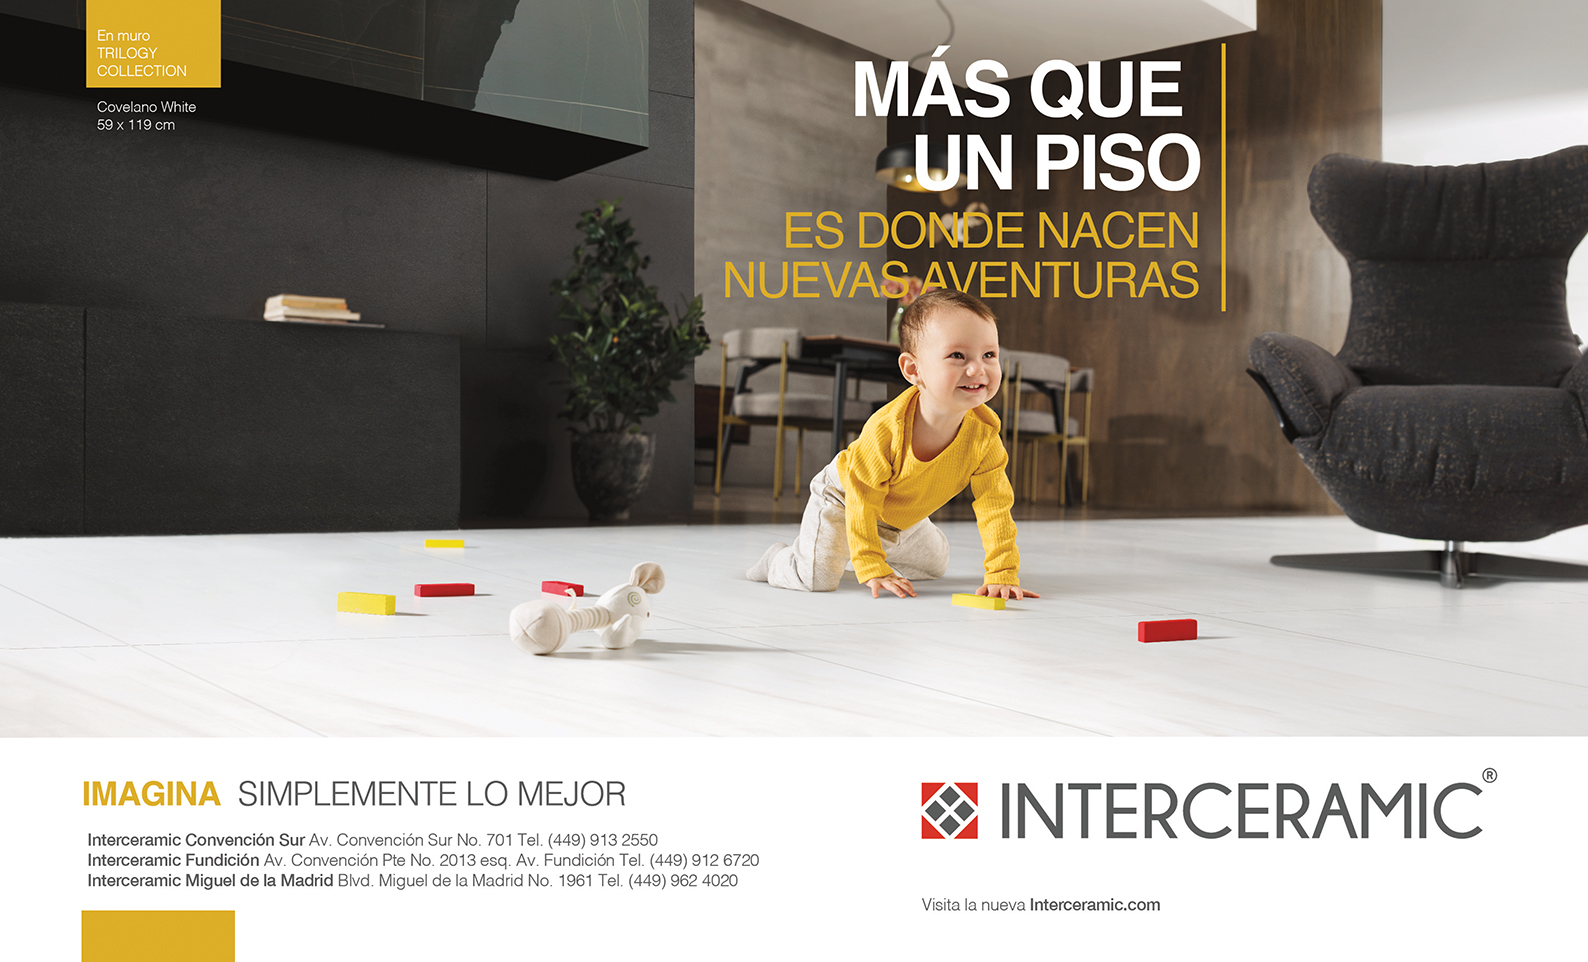 INTERCERAMI